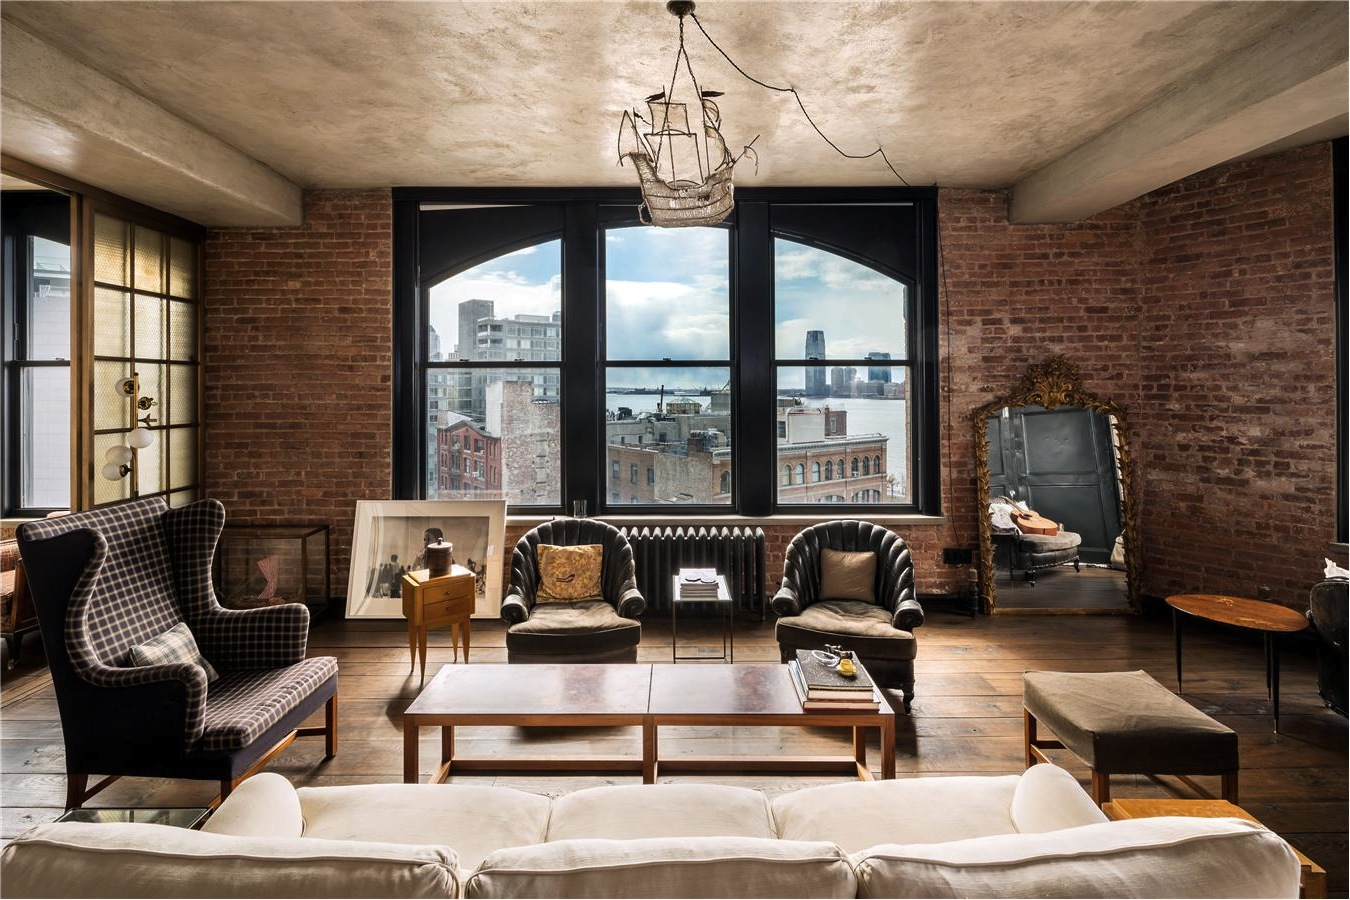 Chez kirsten dunst soho new york elephant in the room for Interieur loft new york